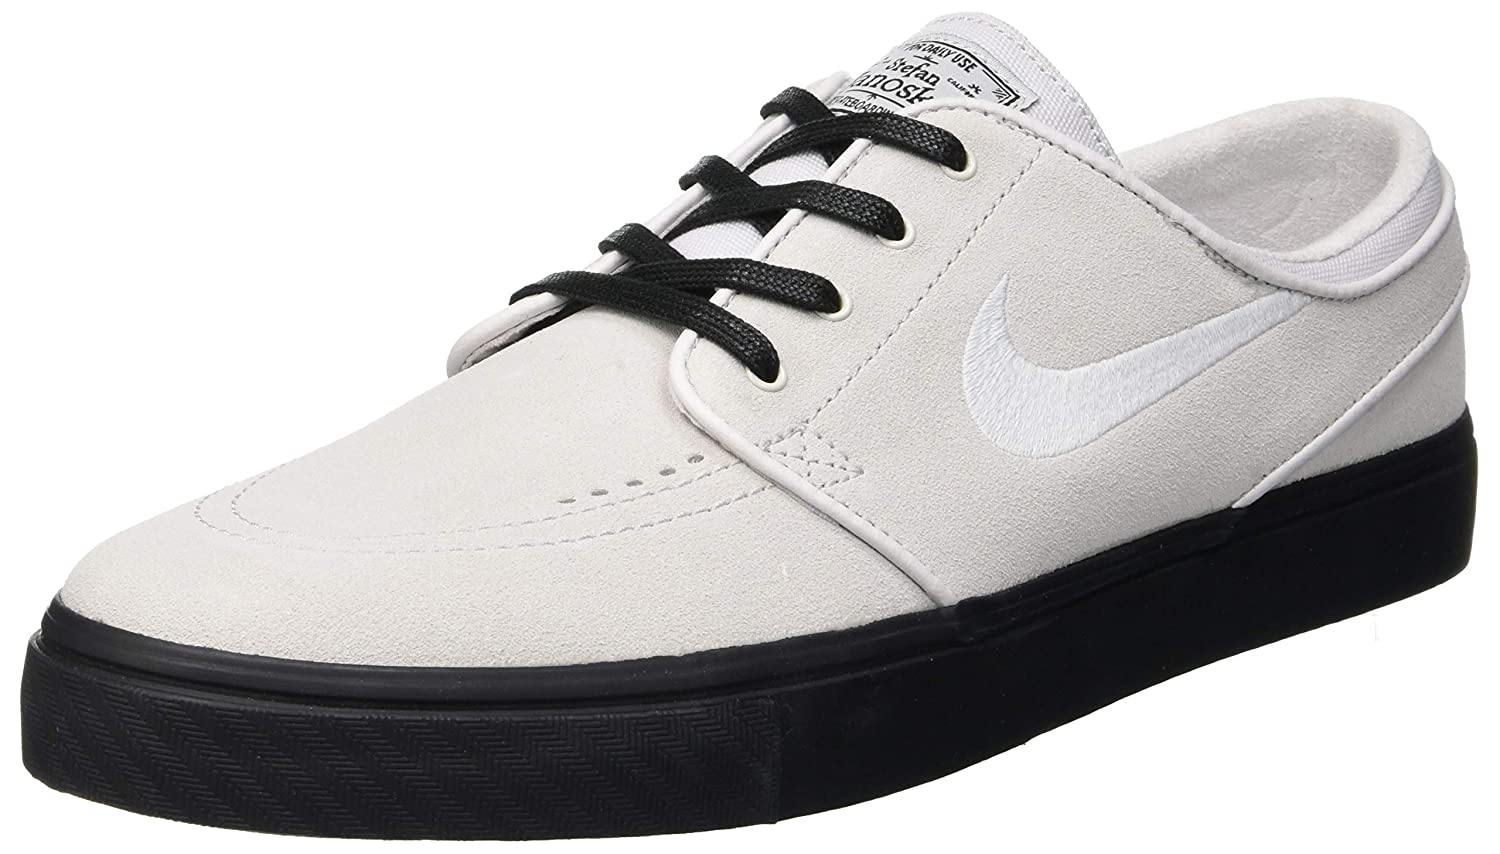 meilleur site web 48c0e c42f4 Amazon.com | Nike SB Zoom Stefan Janoski Vast Grey/Black (12 ...